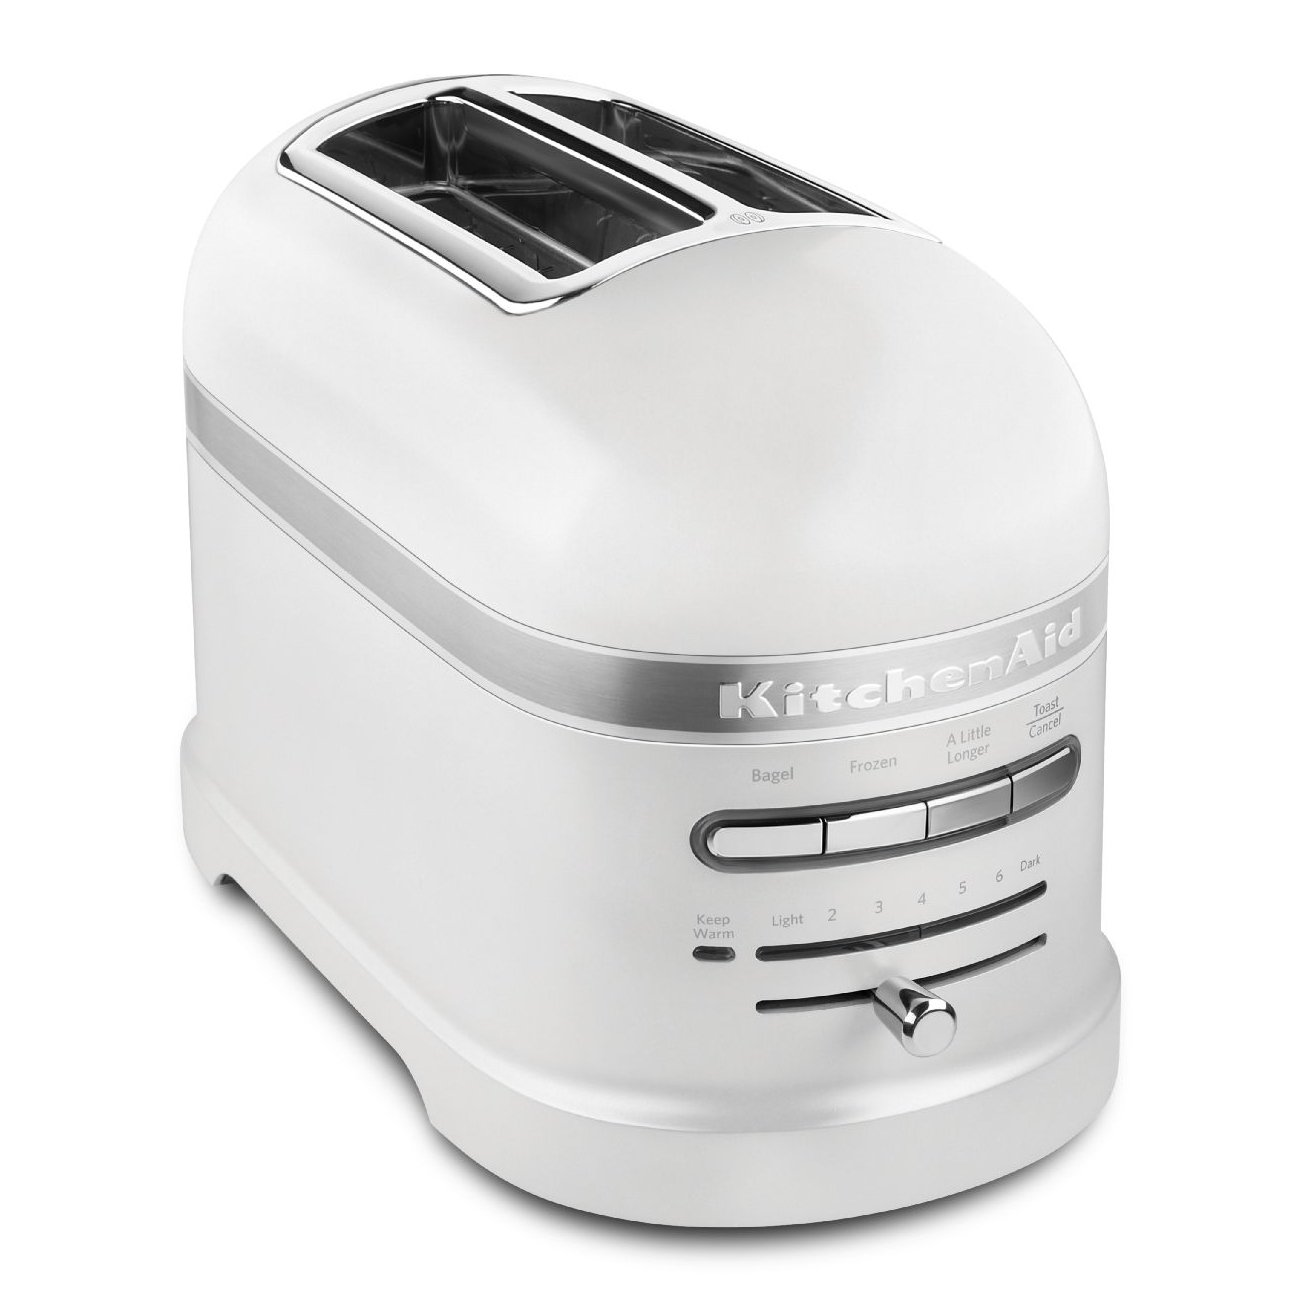 Amazon.com: KitchenAid KMT2203FP Pro Line Series Frosted Pearl White ...